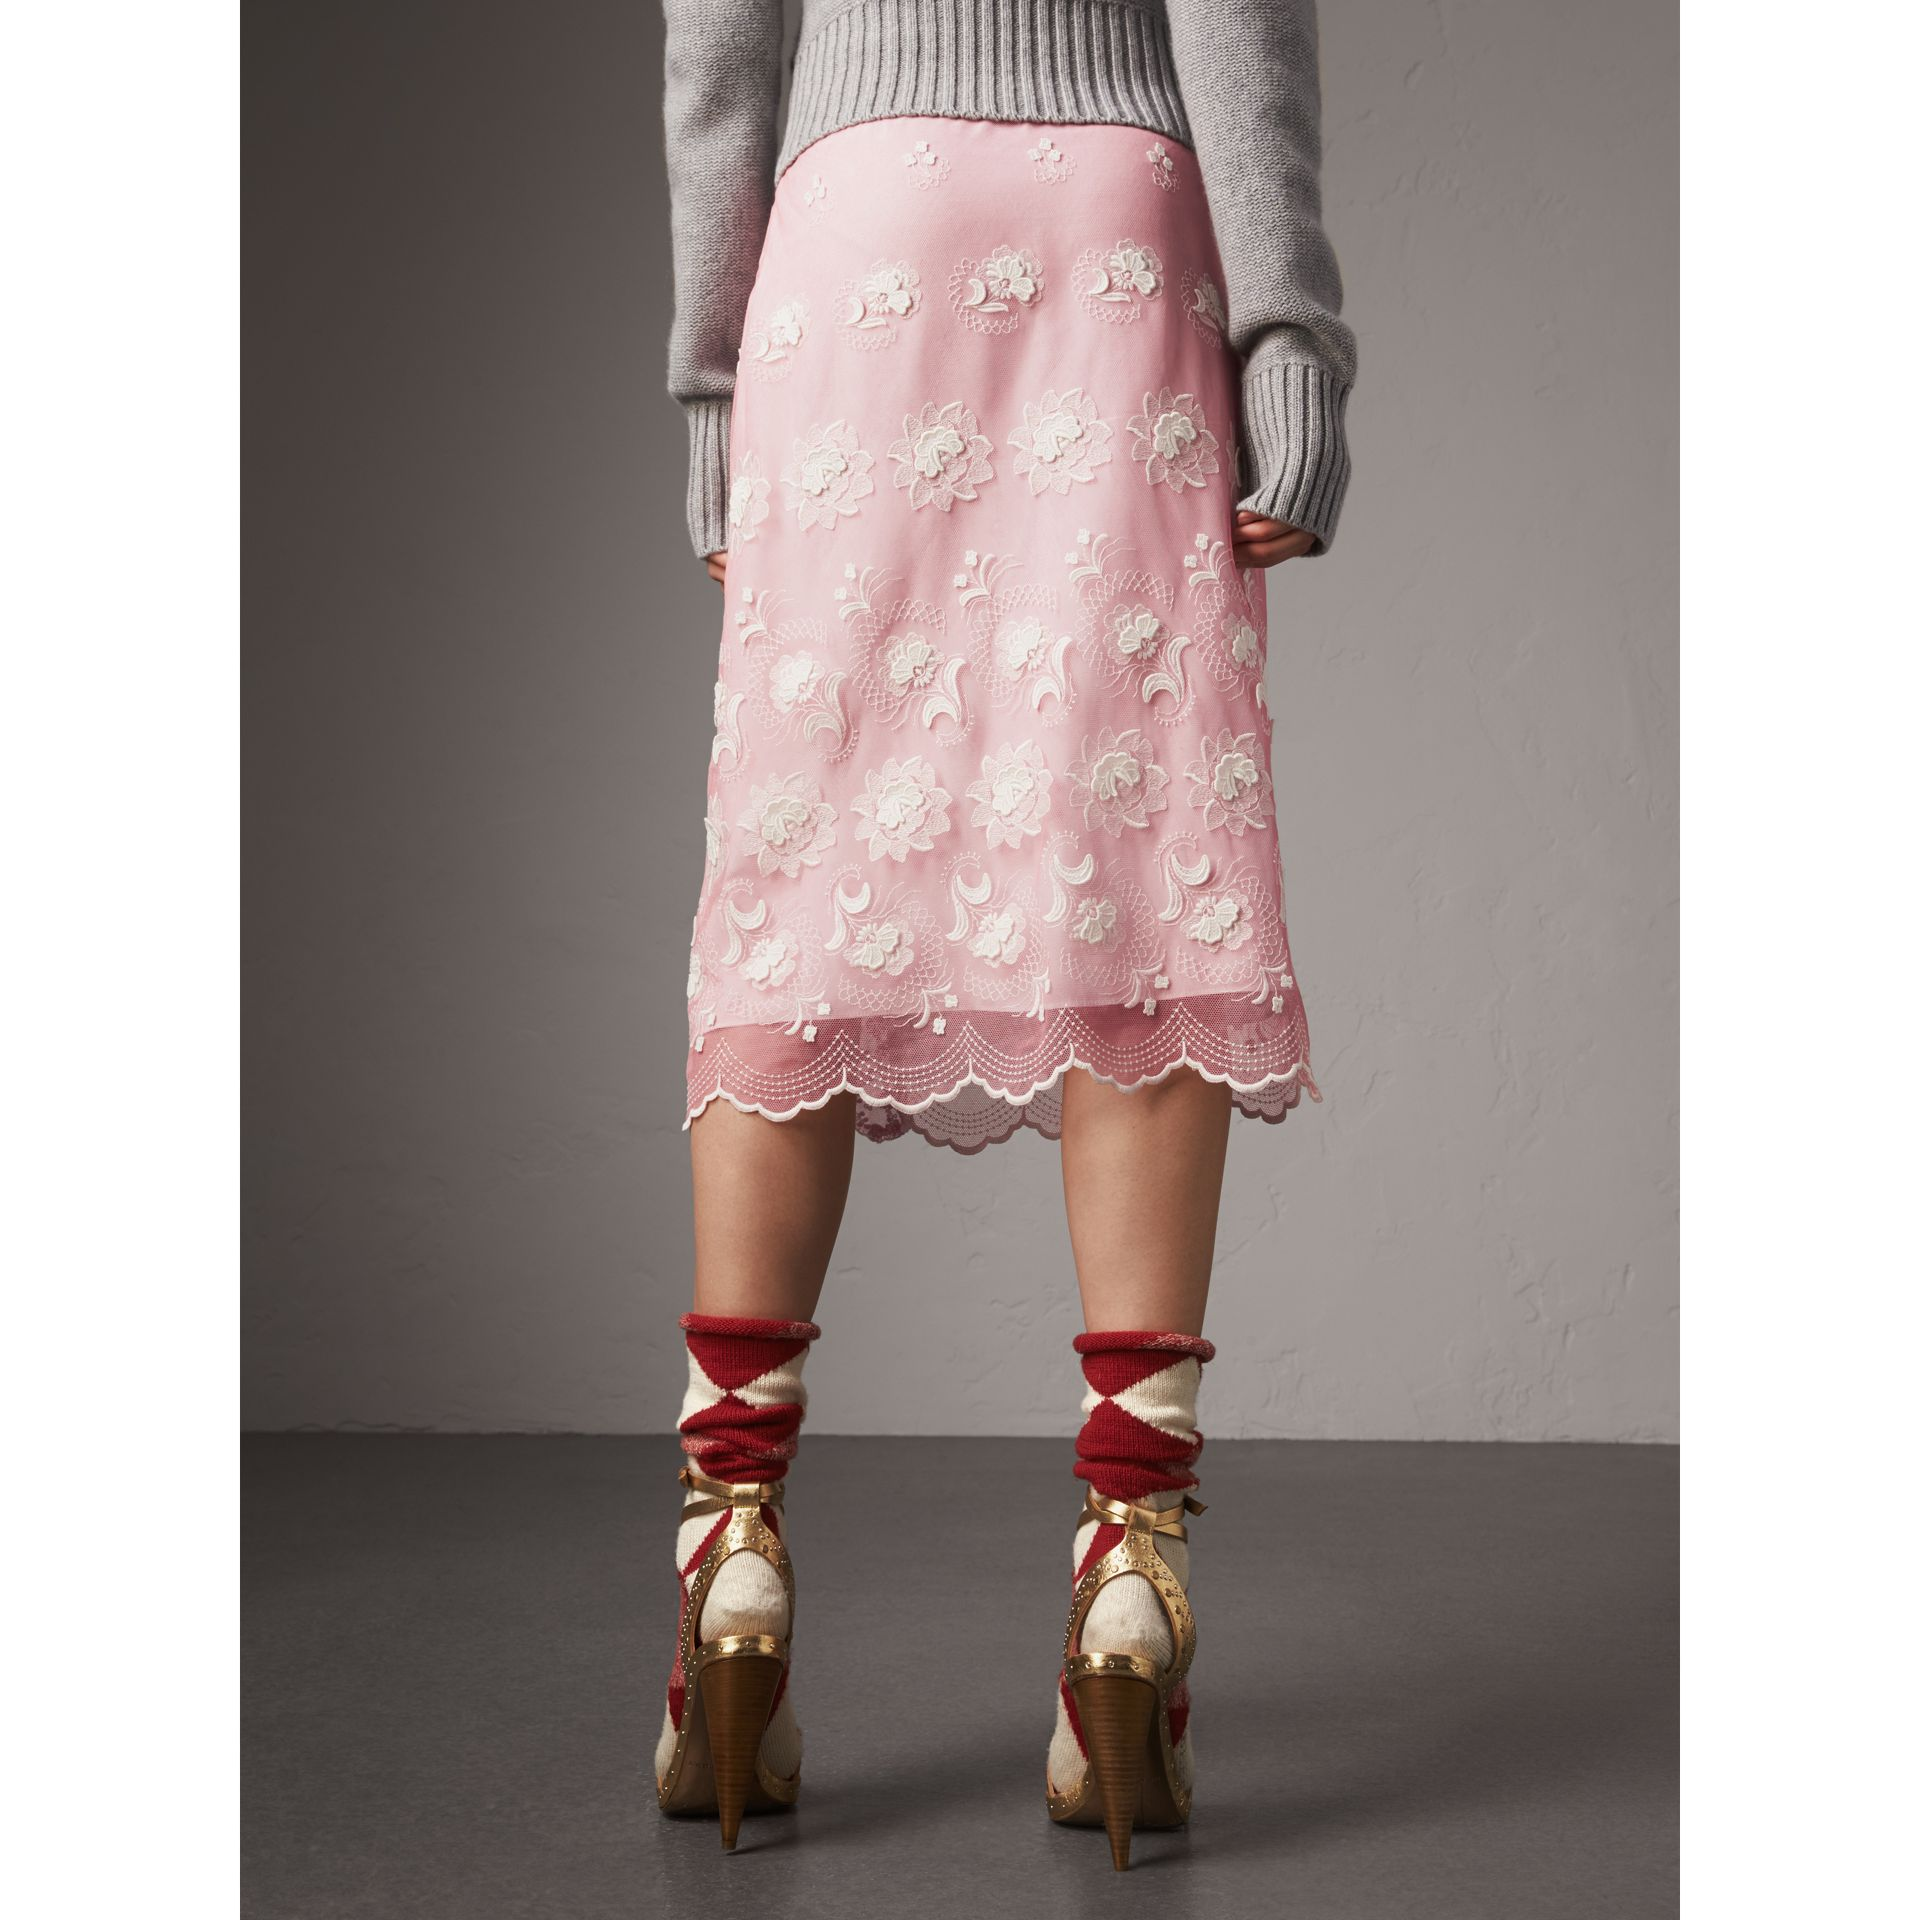 Chantilly Lace Trim Embroidered Tulle Skirt in Rose Pink/white - Women | Burberry - gallery image 2